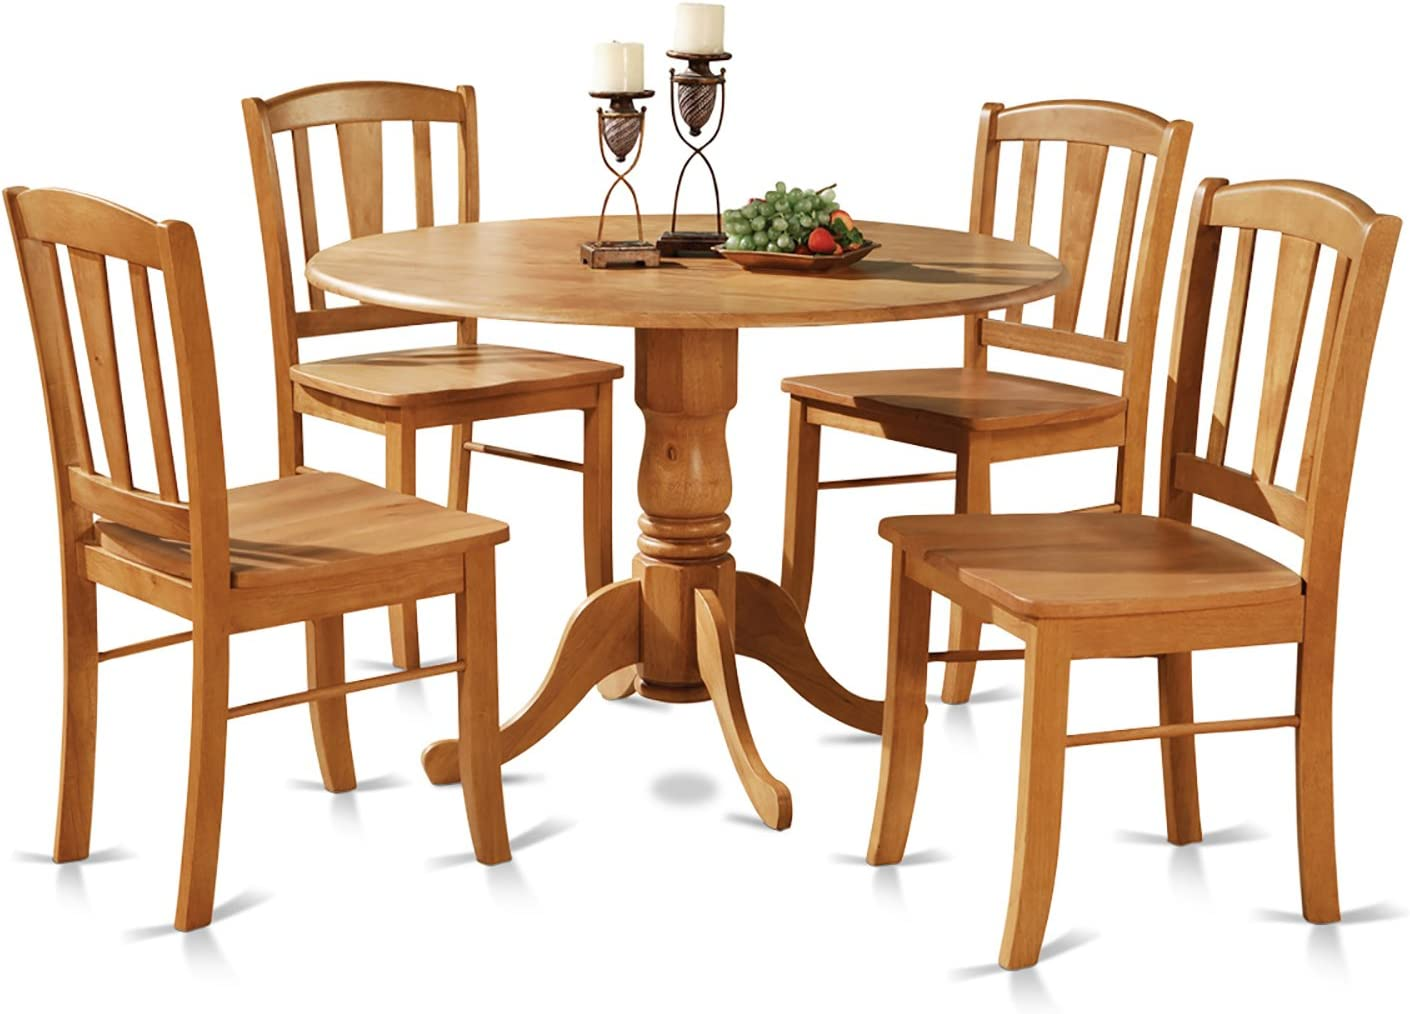 Amazon.com: DLin5-OAK-W 5 Pc Small Kitchen Table And Chairs Set-round Table And 4 Dinette Chairs Chairs: Furniture & Decor